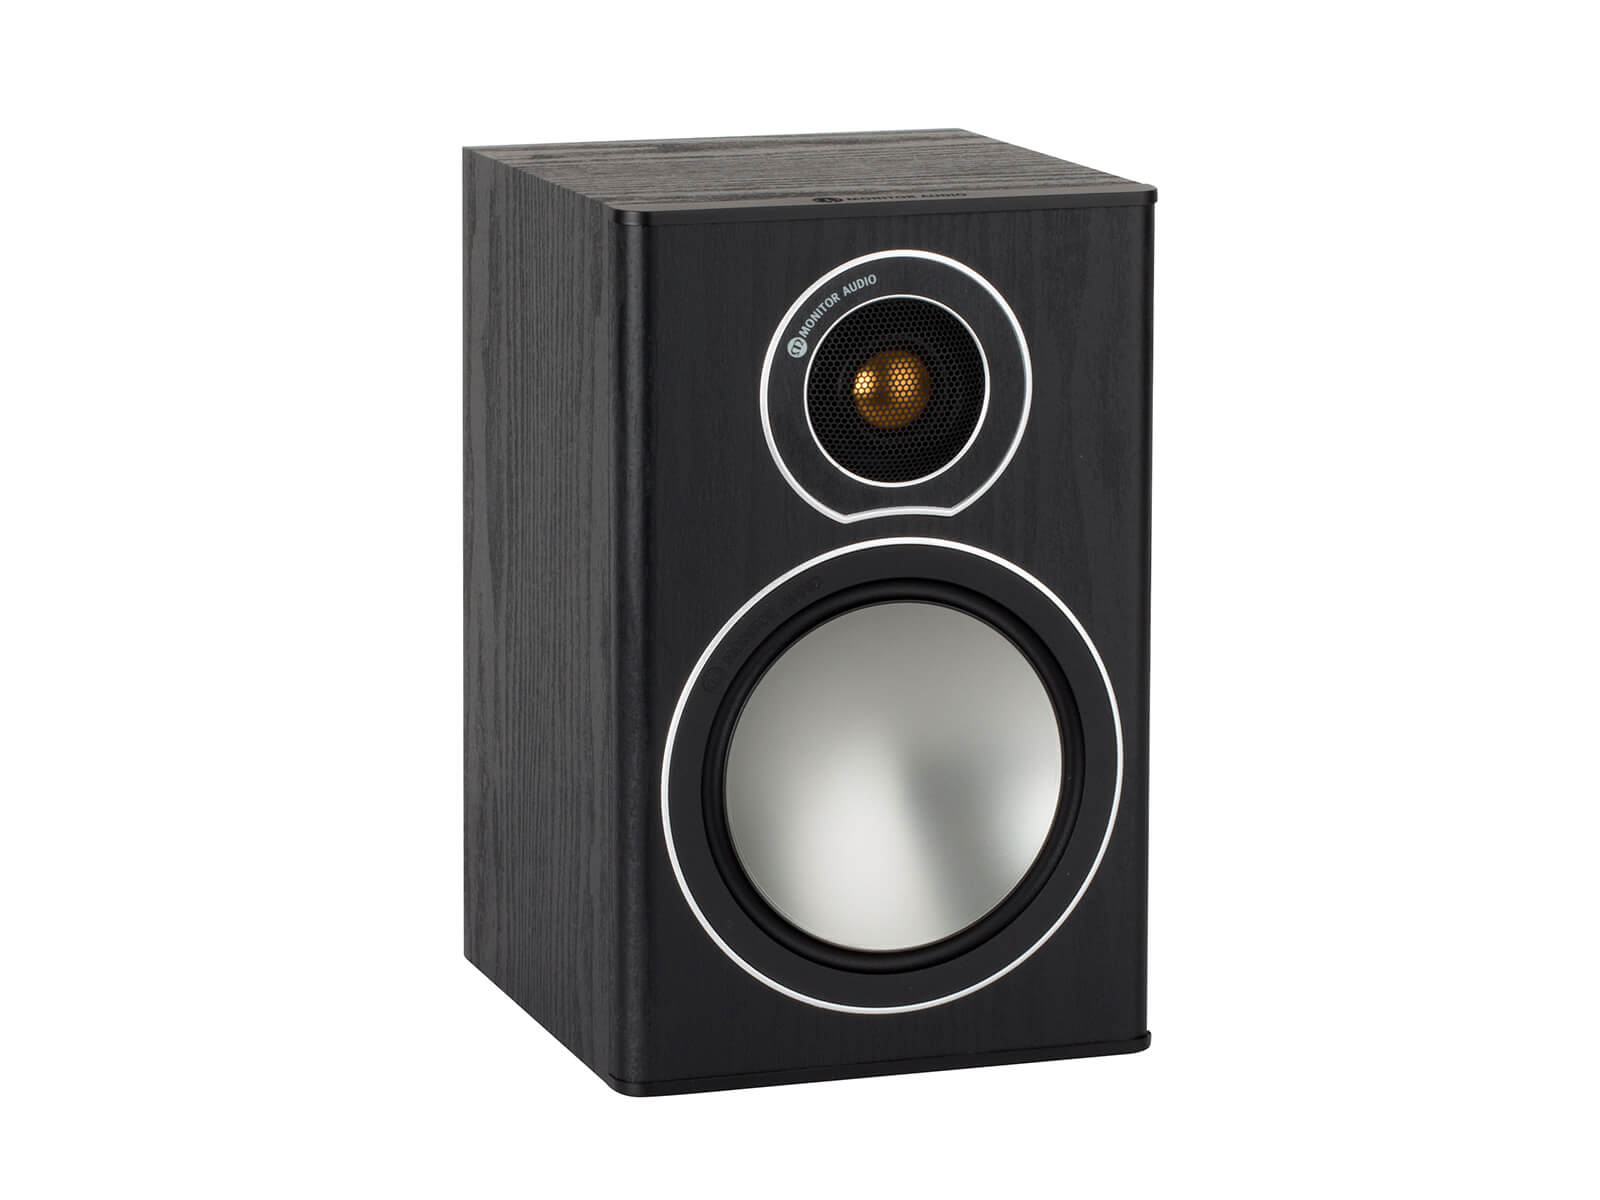 Bronze 1, grille-less bookshelf speakers, with a black oak vinyl finish.